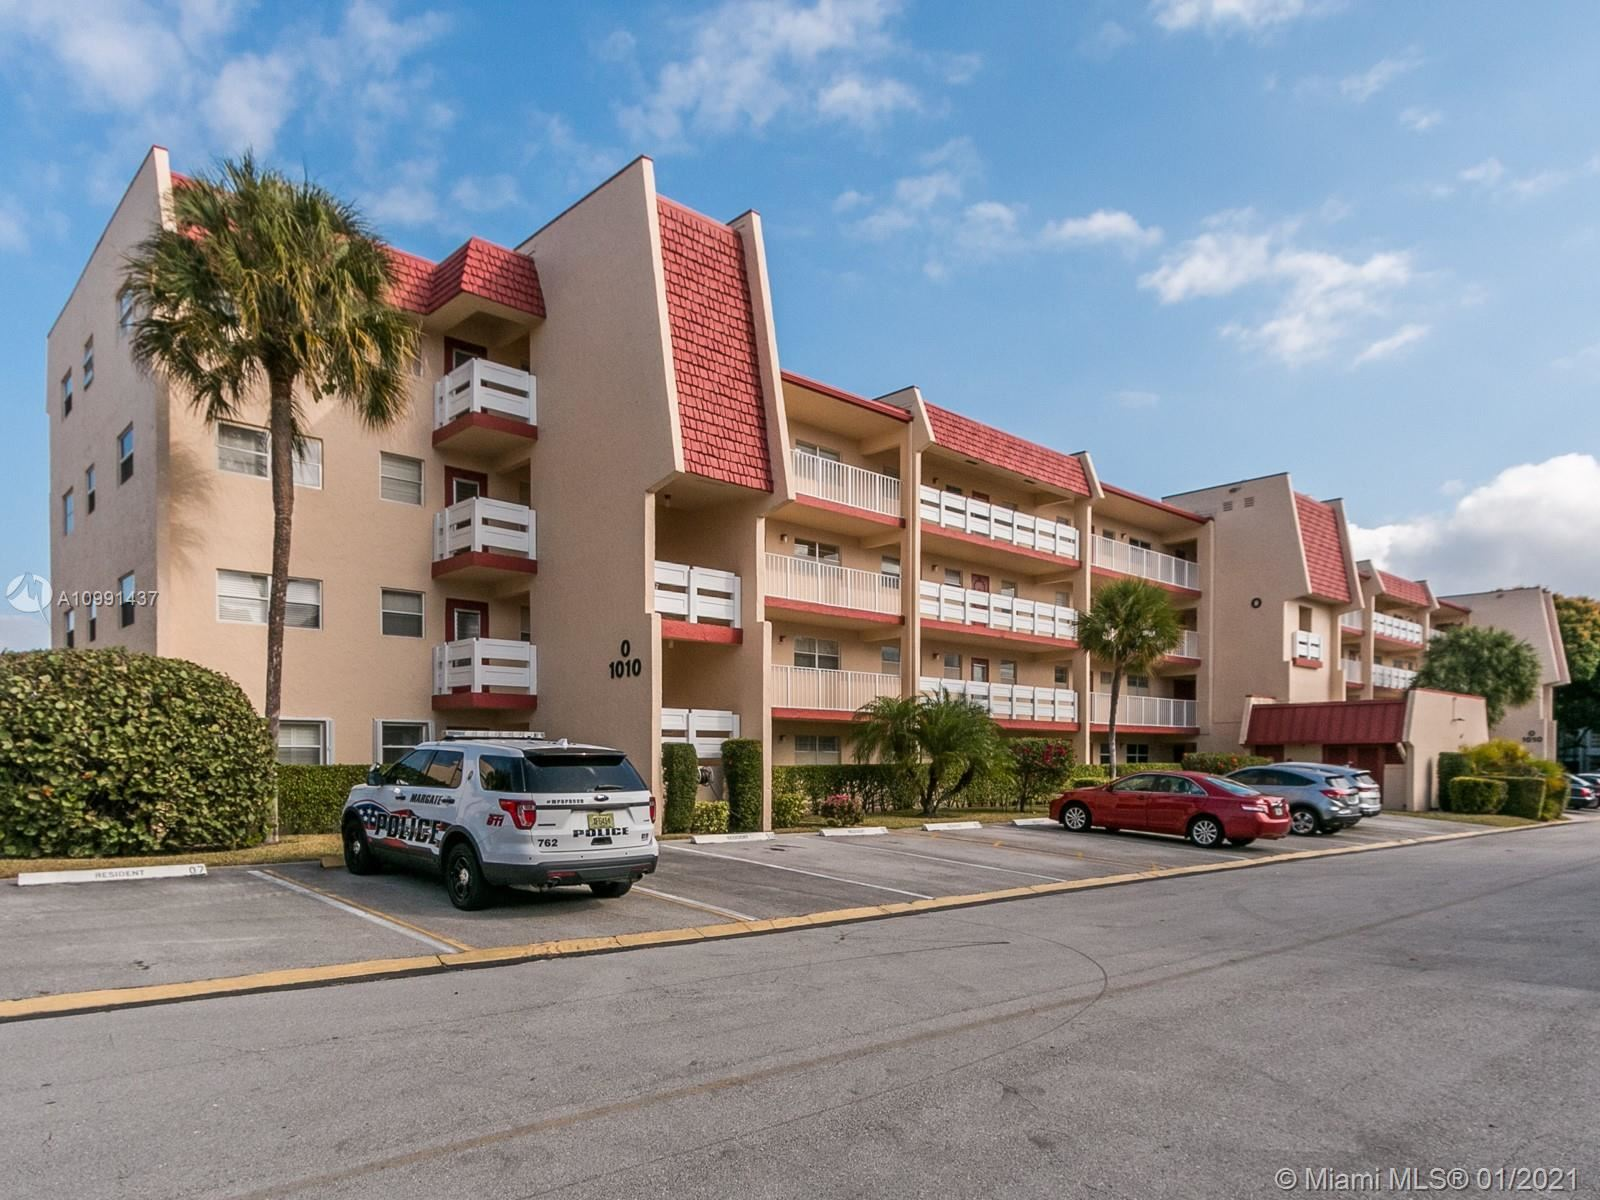 1010 Country Club Dr #101, Margate, FL 33063 - #: A10991437